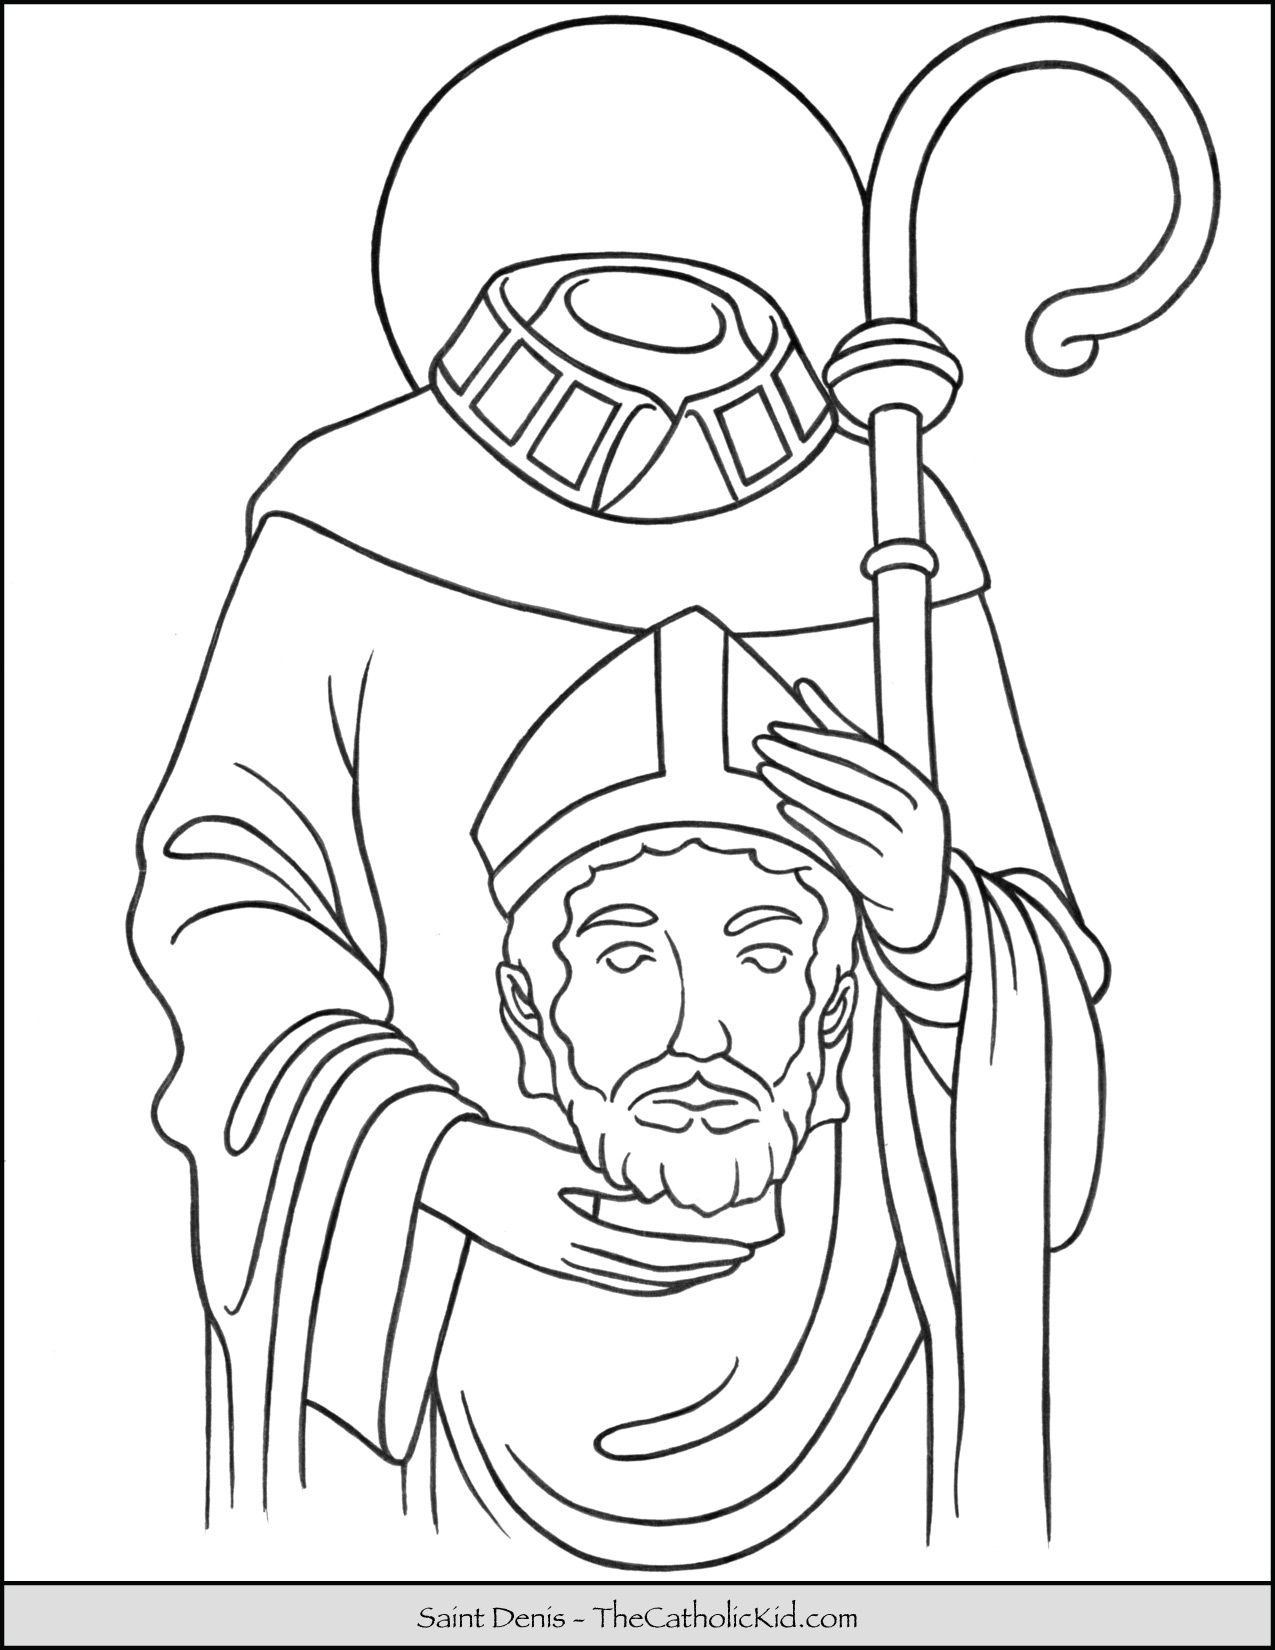 Saint Denis Coloring Page Thecatholickid Com Colorful Drawings